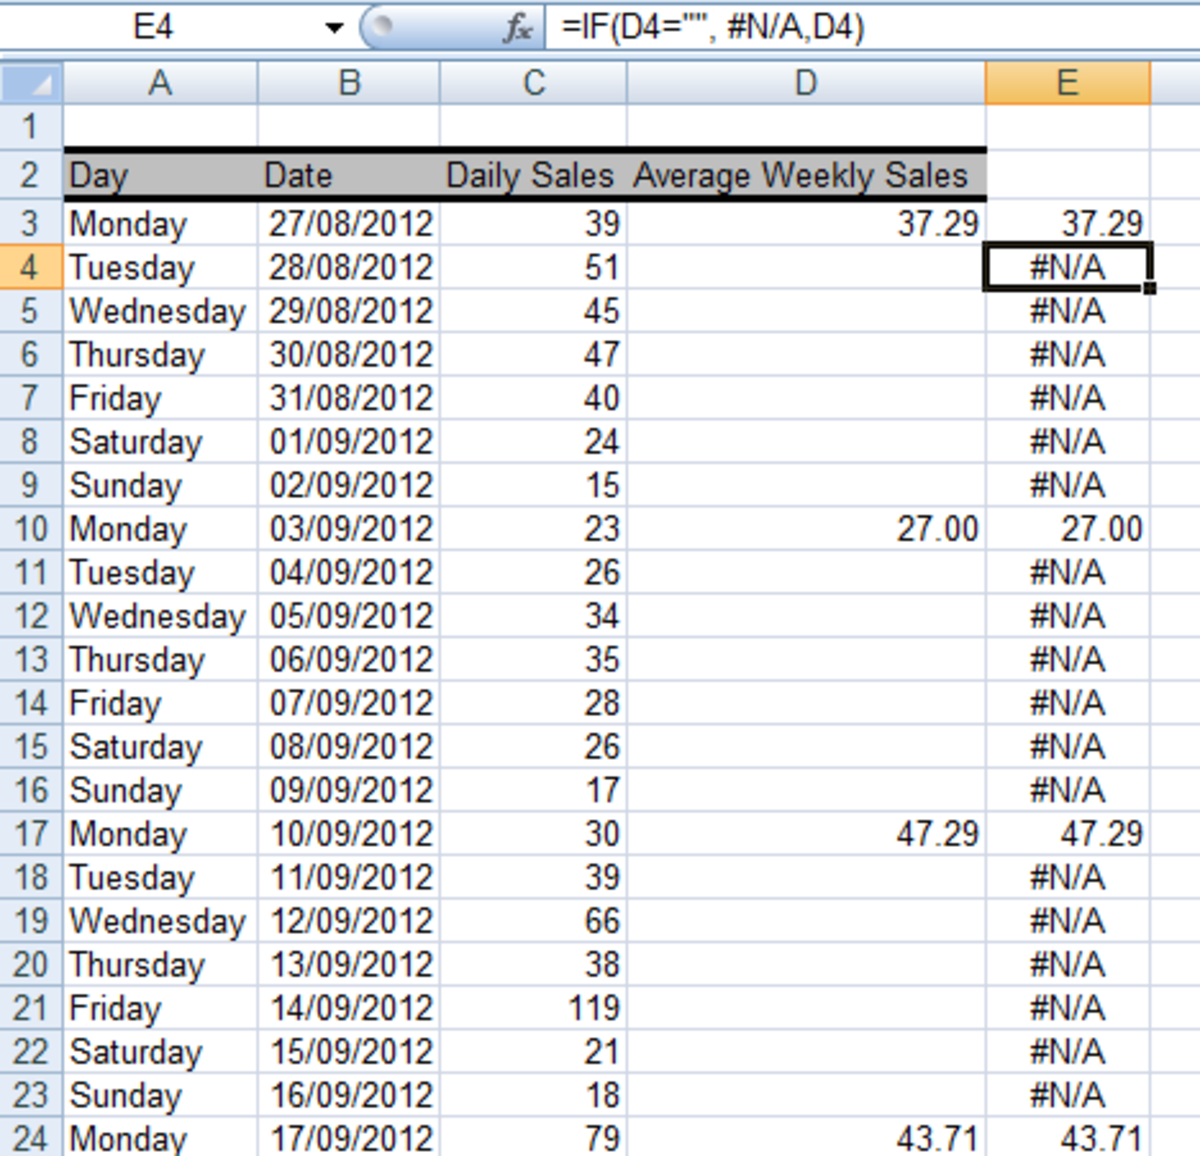 Ediblewildsus  Prepossessing How To Get Excel  And  To Ignore Empty Cells In A Chart Or  With Entrancing Using The If Function In A Formula To Convert Empty Cells To Na With Divine Solve Quadratic Equation Excel Also Code  Excel In Addition Geocode Excel And Microsoft Access And Excel As Well As Excel For Beginners  Additionally Chi Squared Test In Excel From Turbofuturecom With Ediblewildsus  Entrancing How To Get Excel  And  To Ignore Empty Cells In A Chart Or  With Divine Using The If Function In A Formula To Convert Empty Cells To Na And Prepossessing Solve Quadratic Equation Excel Also Code  Excel In Addition Geocode Excel From Turbofuturecom